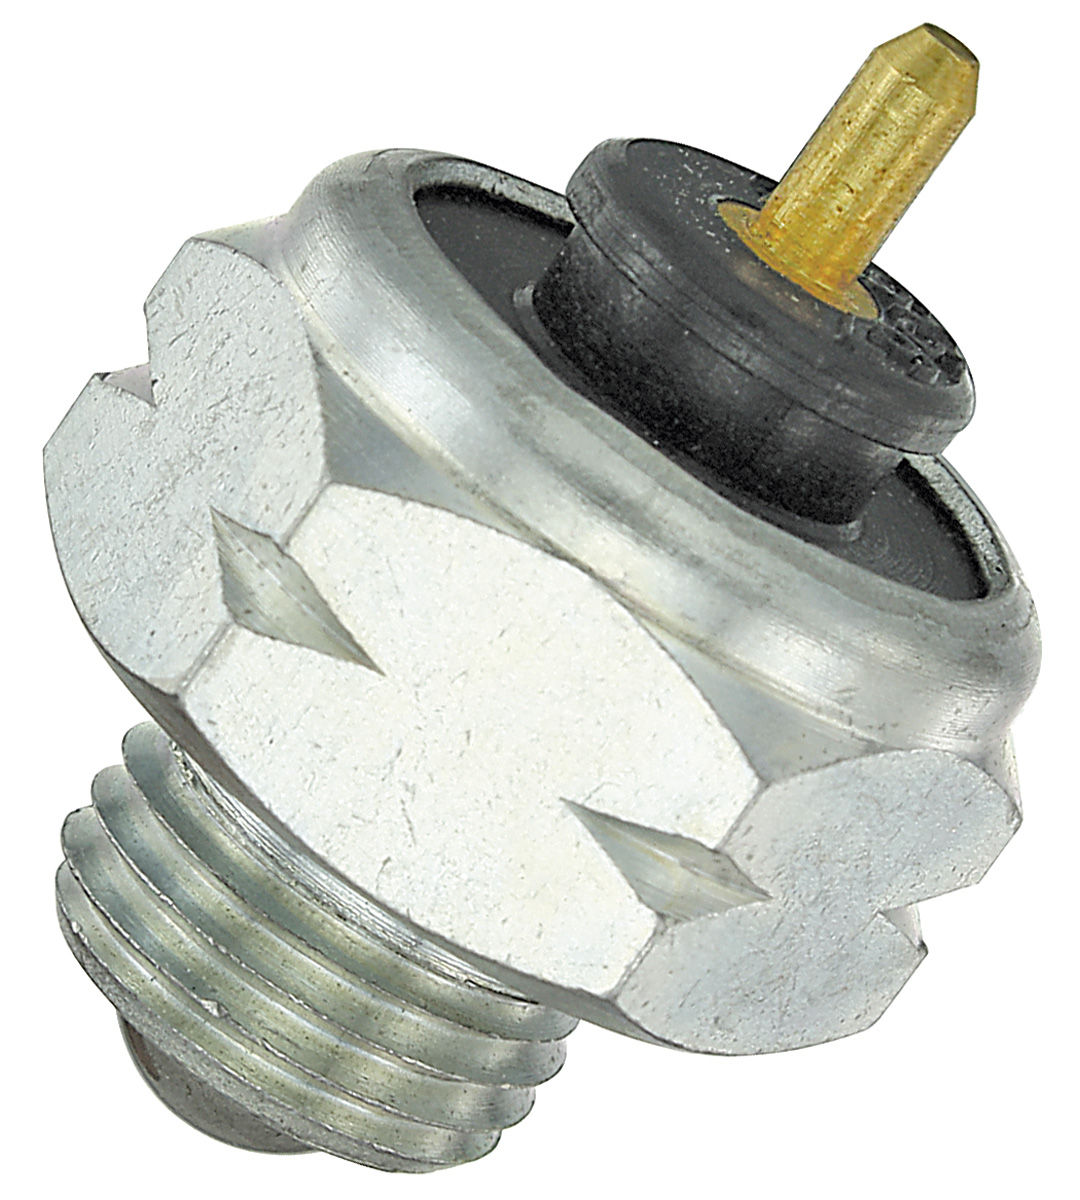 Photo of Transmission Control Spark Switch (M-20, M-21, M-22 & T-10; Pin Style)